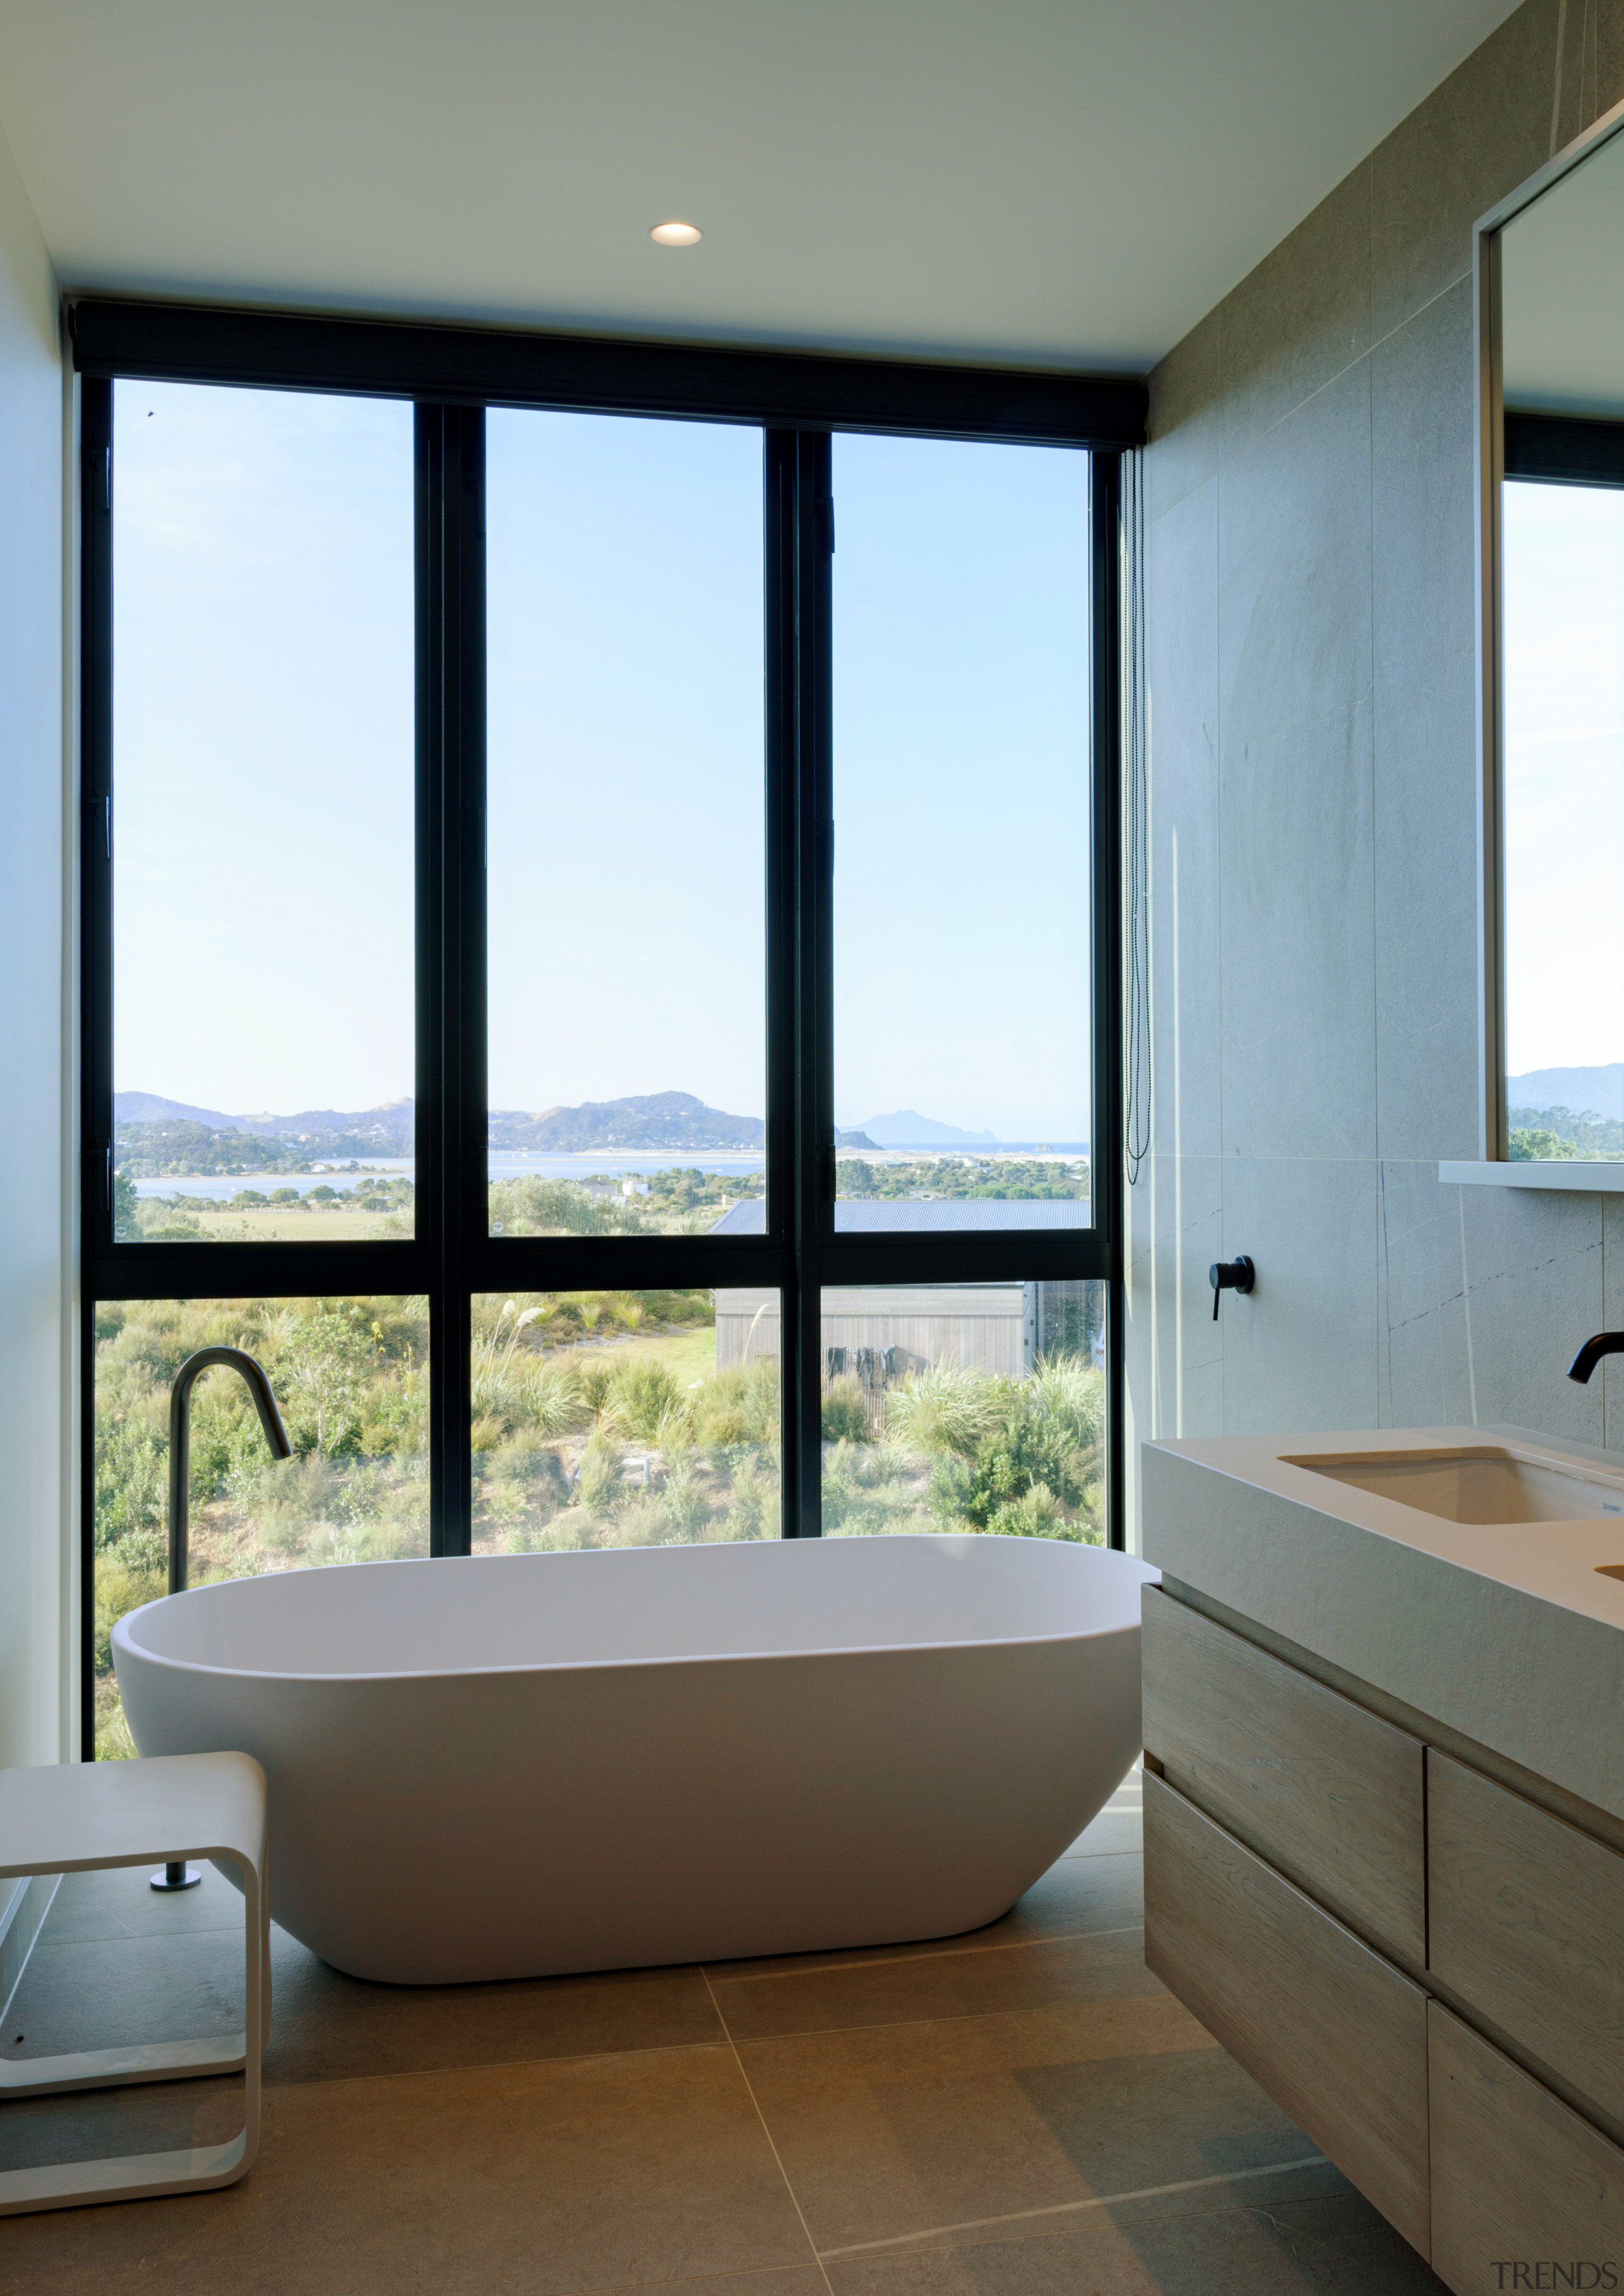 Soaking in the views – floor-to-ceiling windows mean